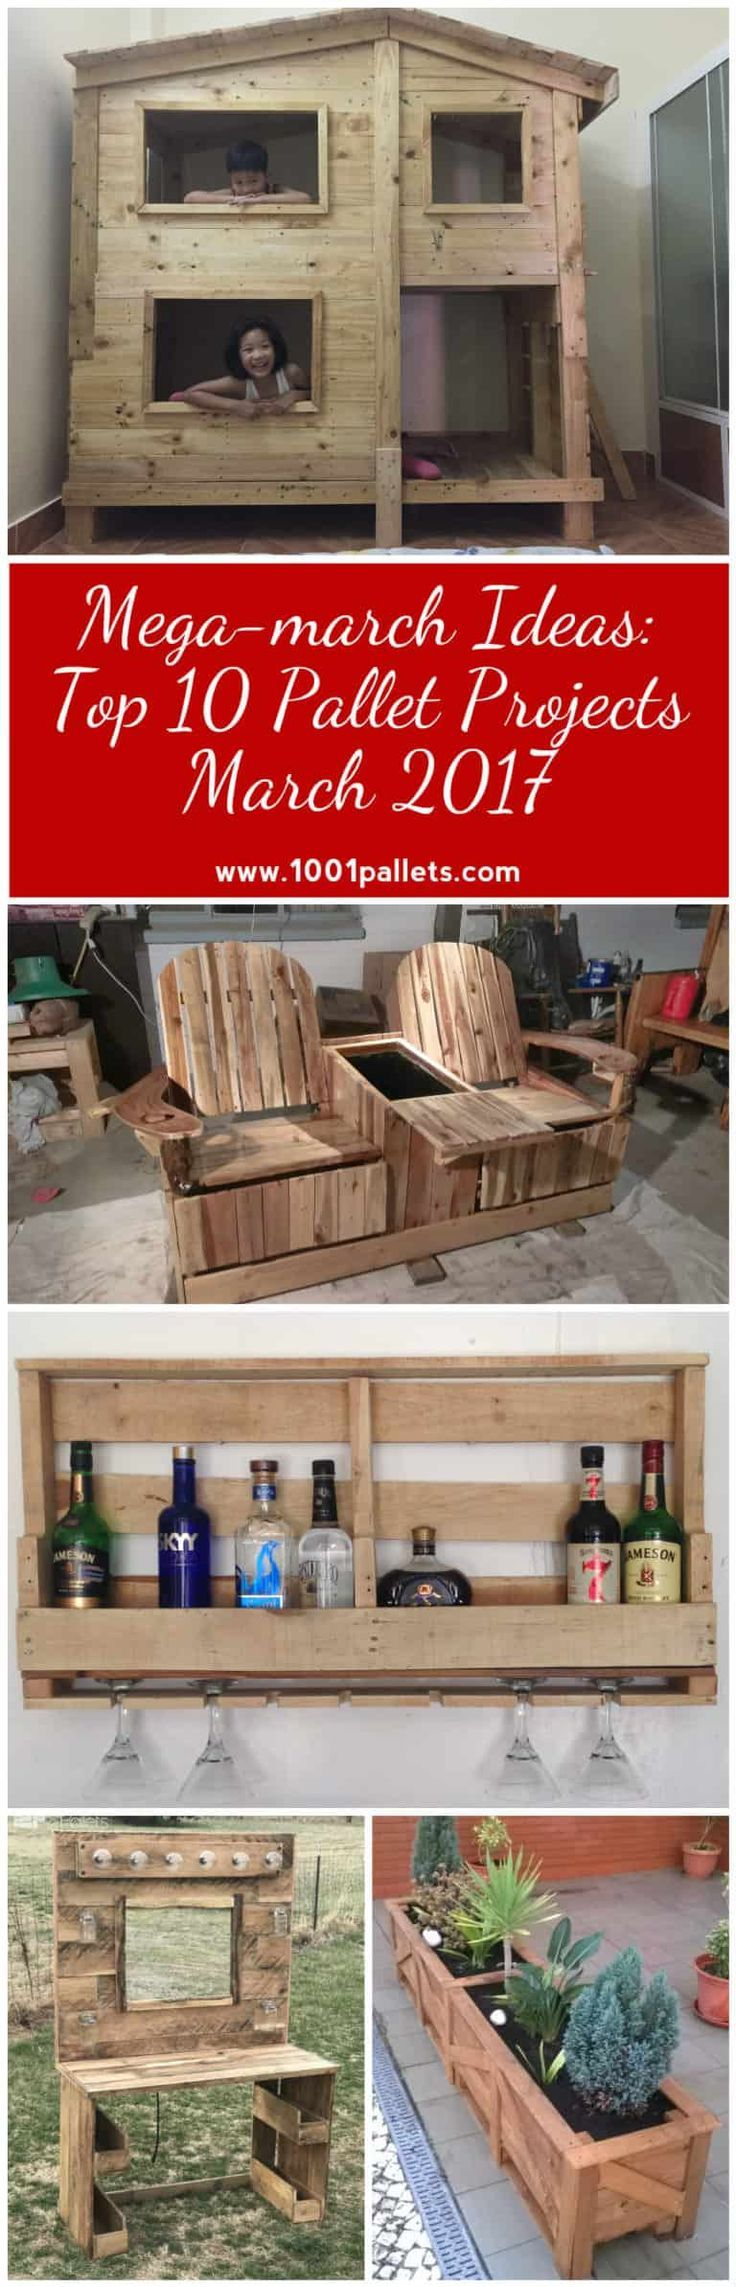 Mega-march Ideas: Top 10 Pallet Projects March 2017,  Mega-march Ideas: Top 10 Pallet Projects March 2017,